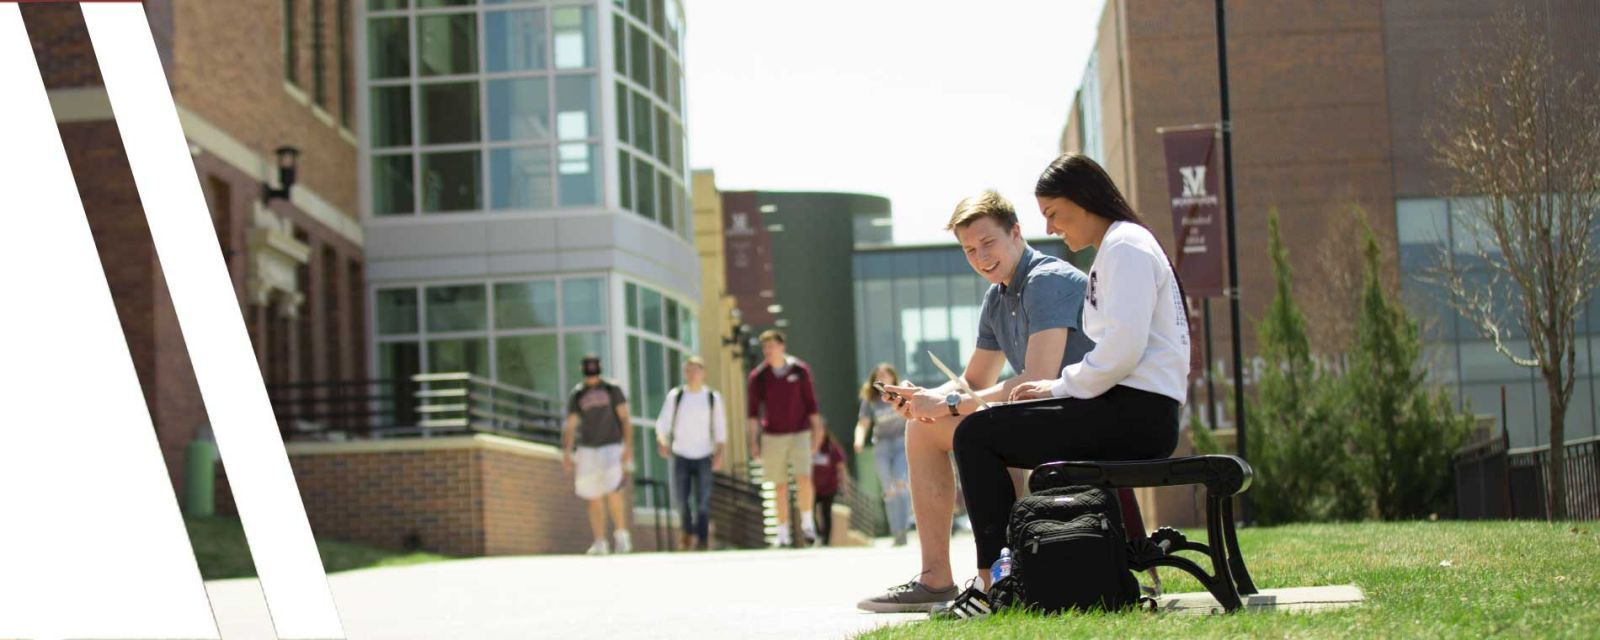 students talking on bench